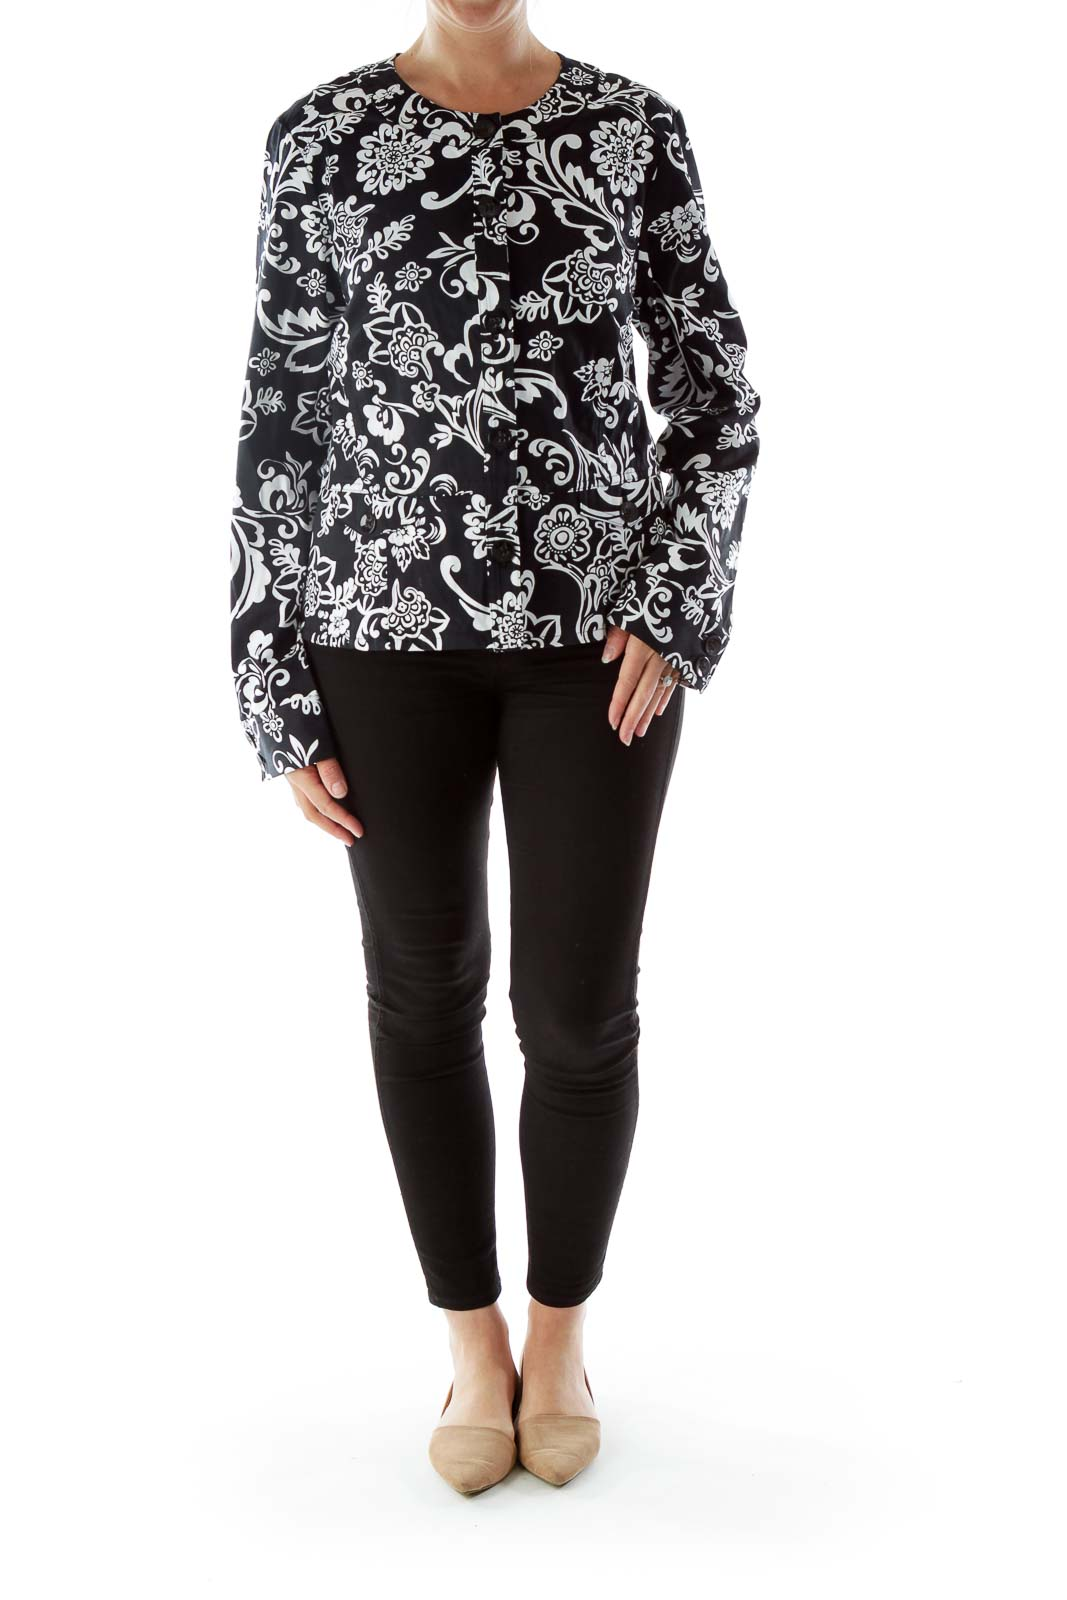 Black and White Printed Long Sleeve